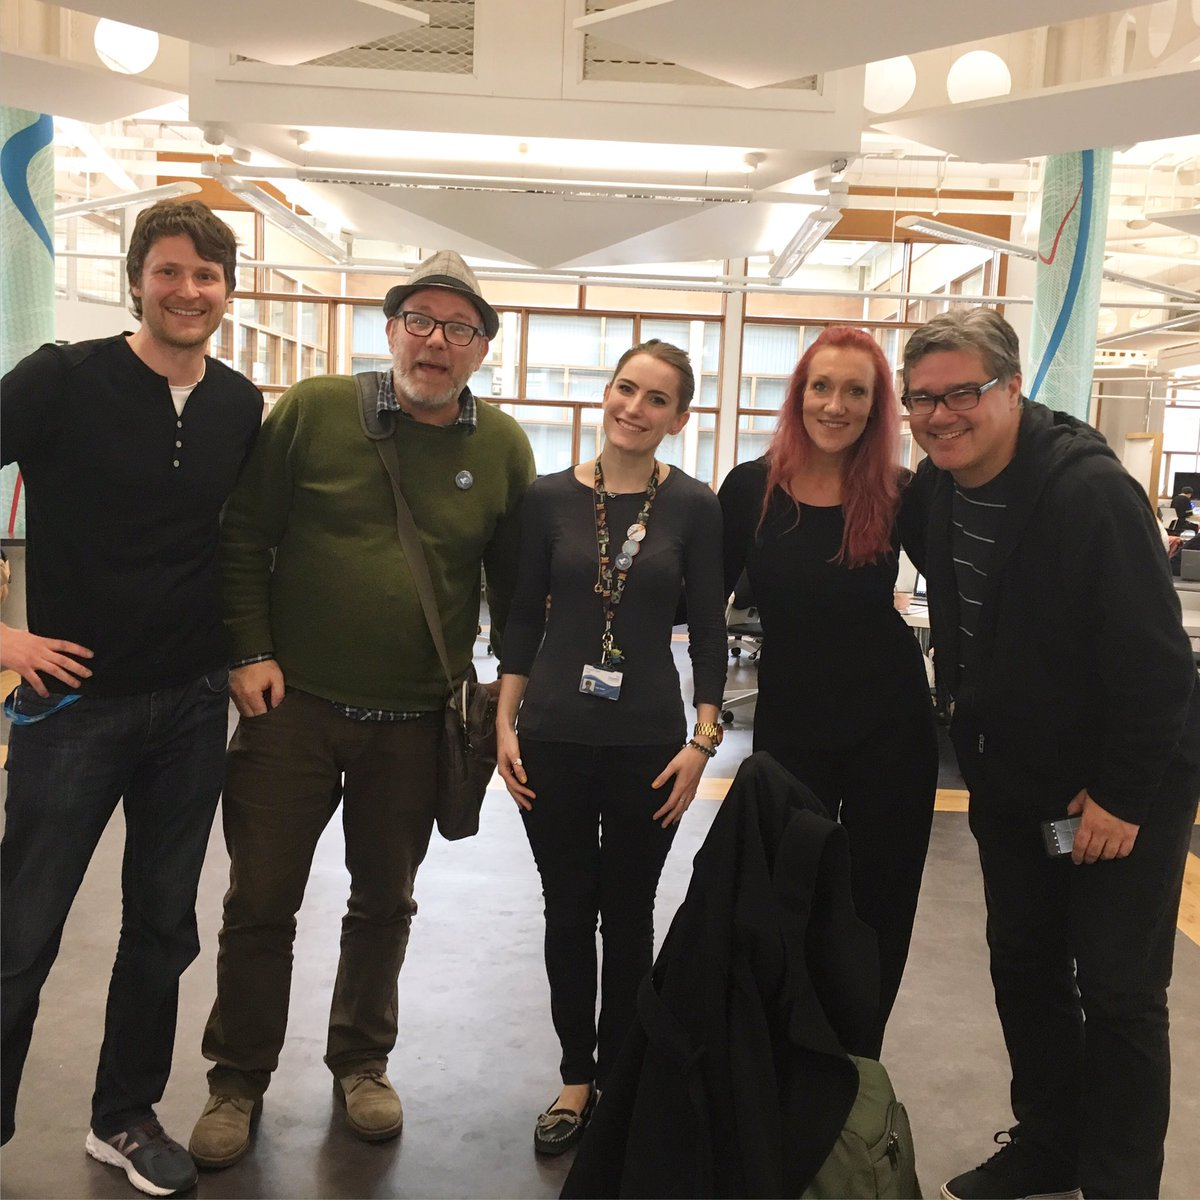 Northern Exposure: keeping it weird with @alexmasters @jimgroom @KateGreen28 @brlamb #dmllexpo https://t.co/BbpuxJL4yL